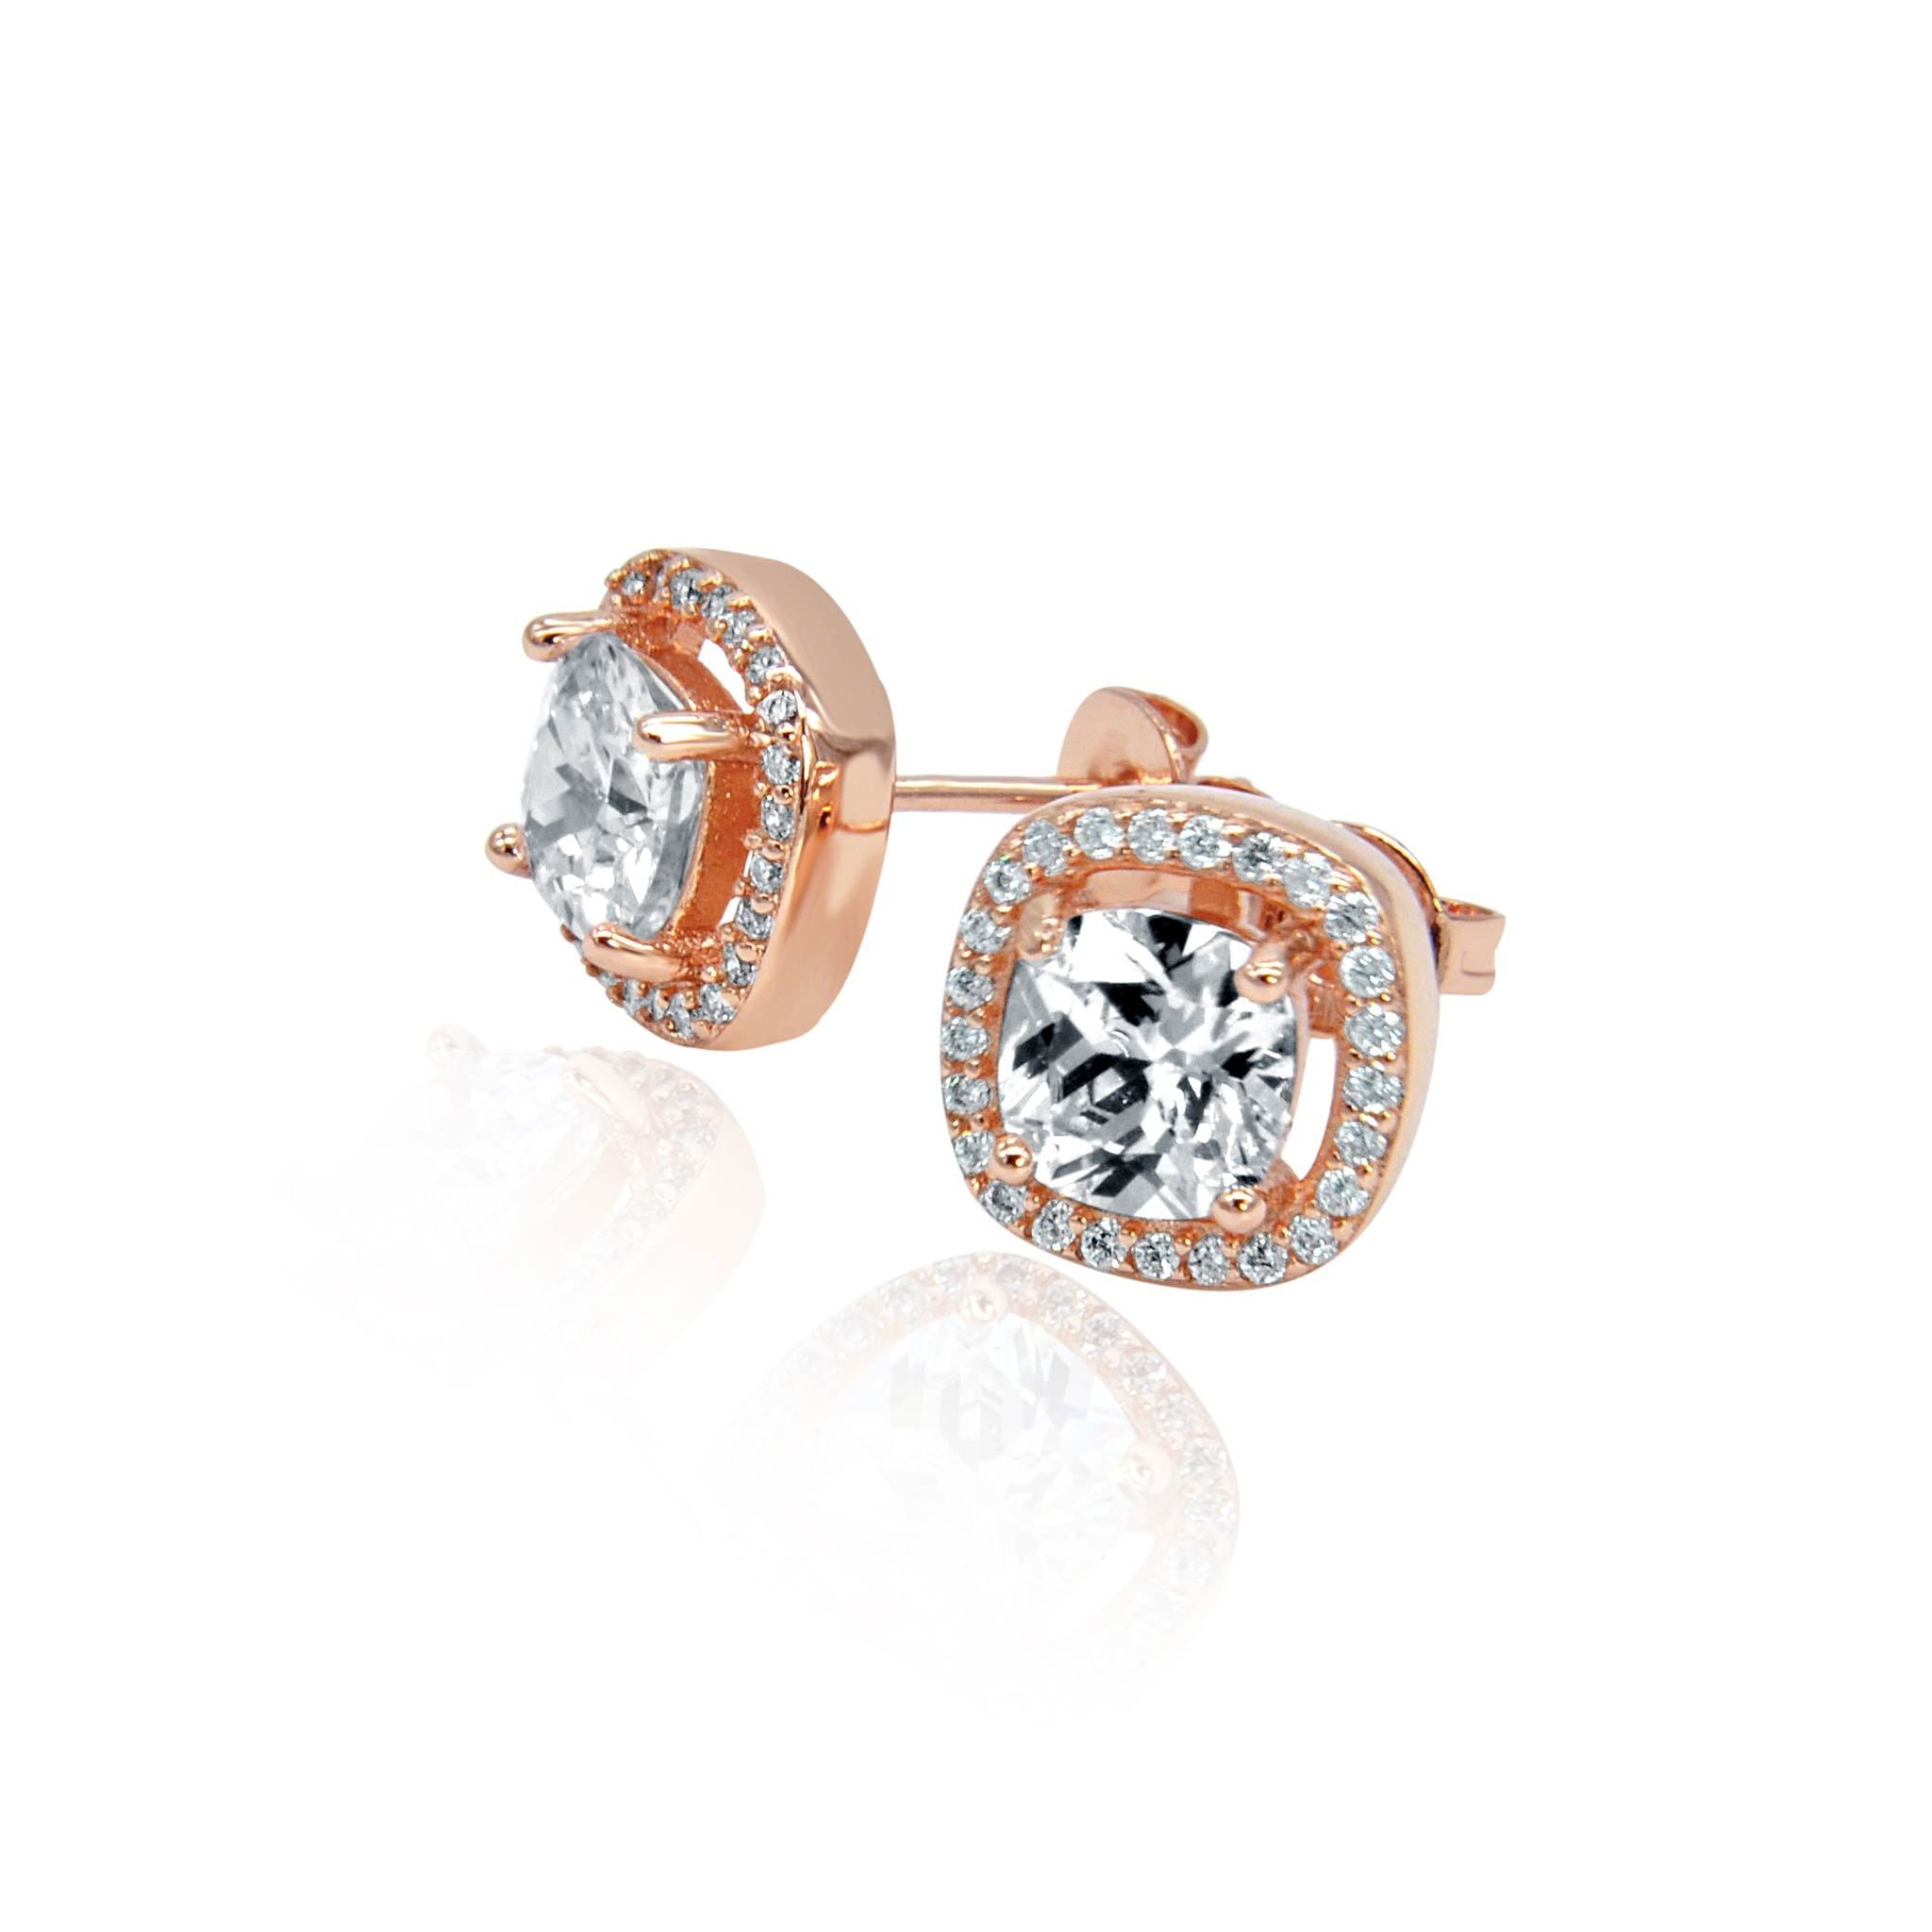 Rose gold crystal stud earrings 2 -DEMI+CO Jewellery